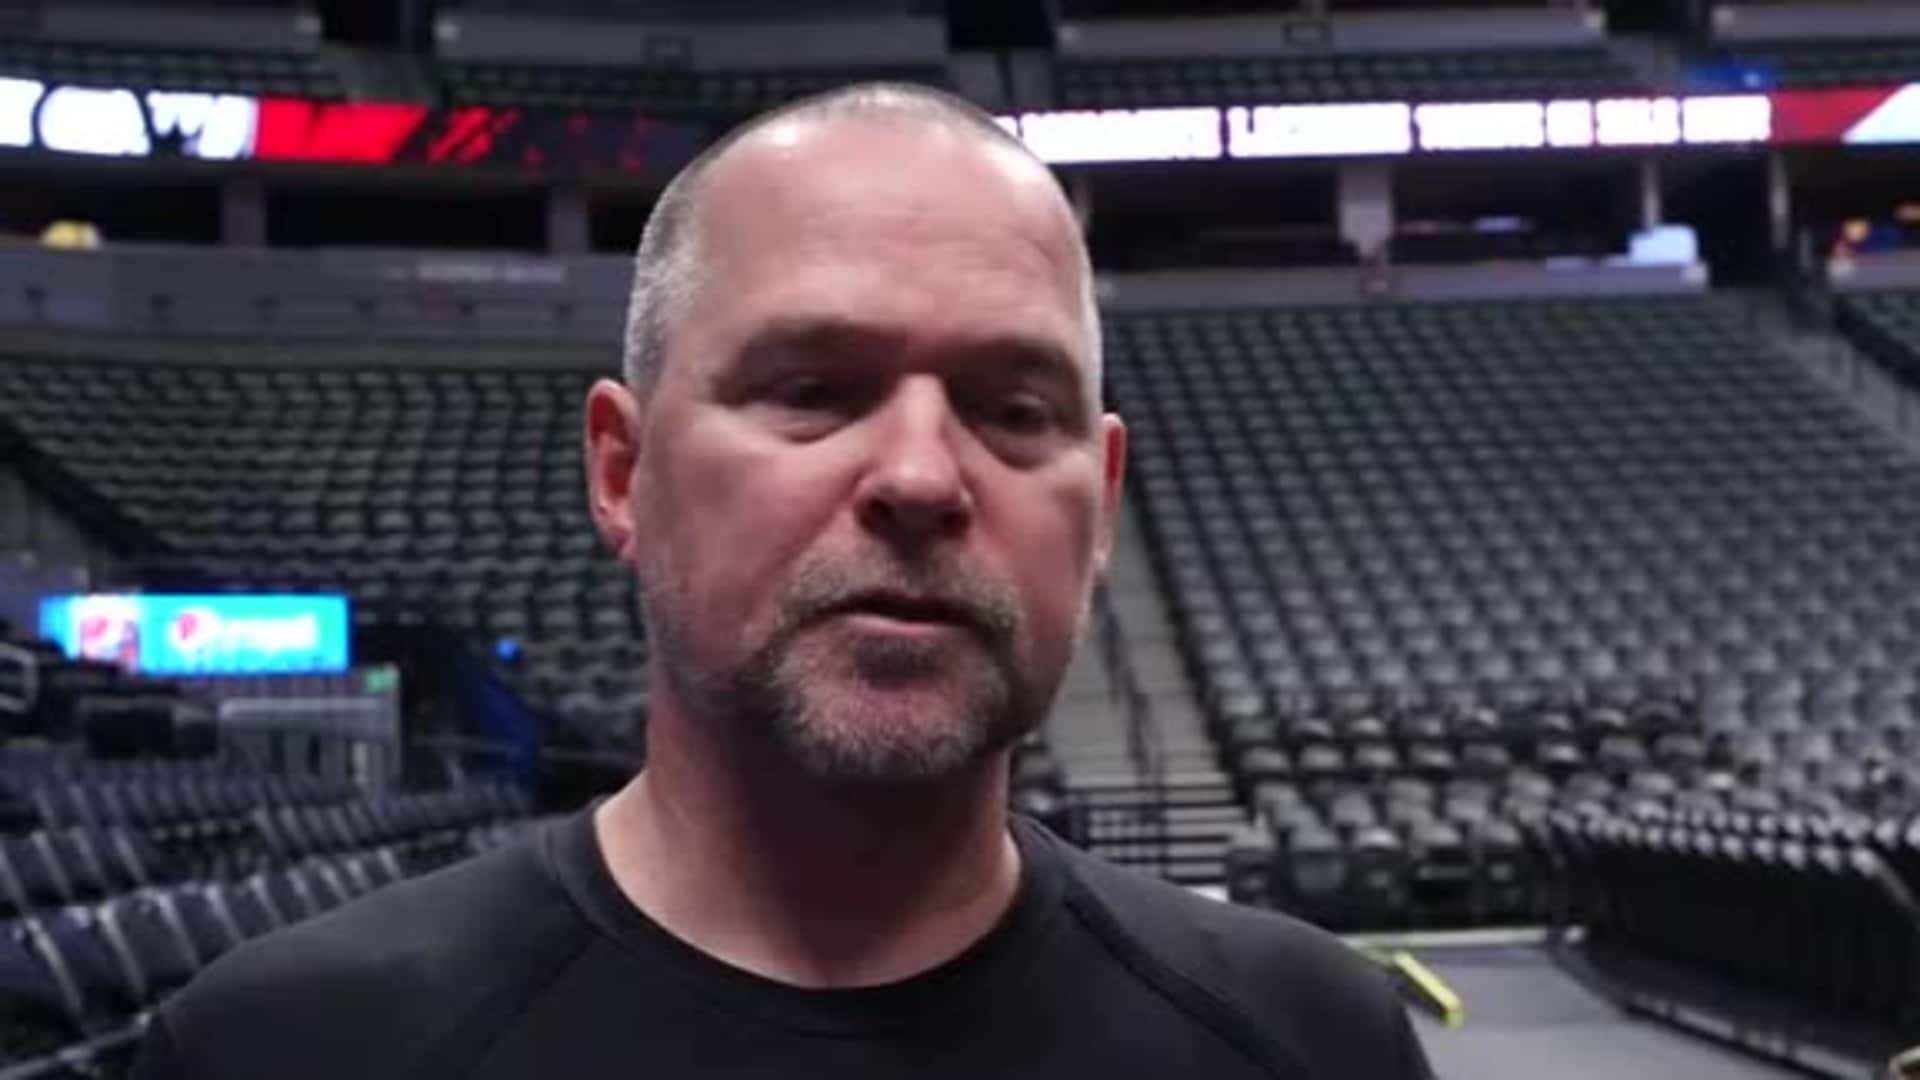 Nuggets practice: Michael Malone interview (11/4/19)